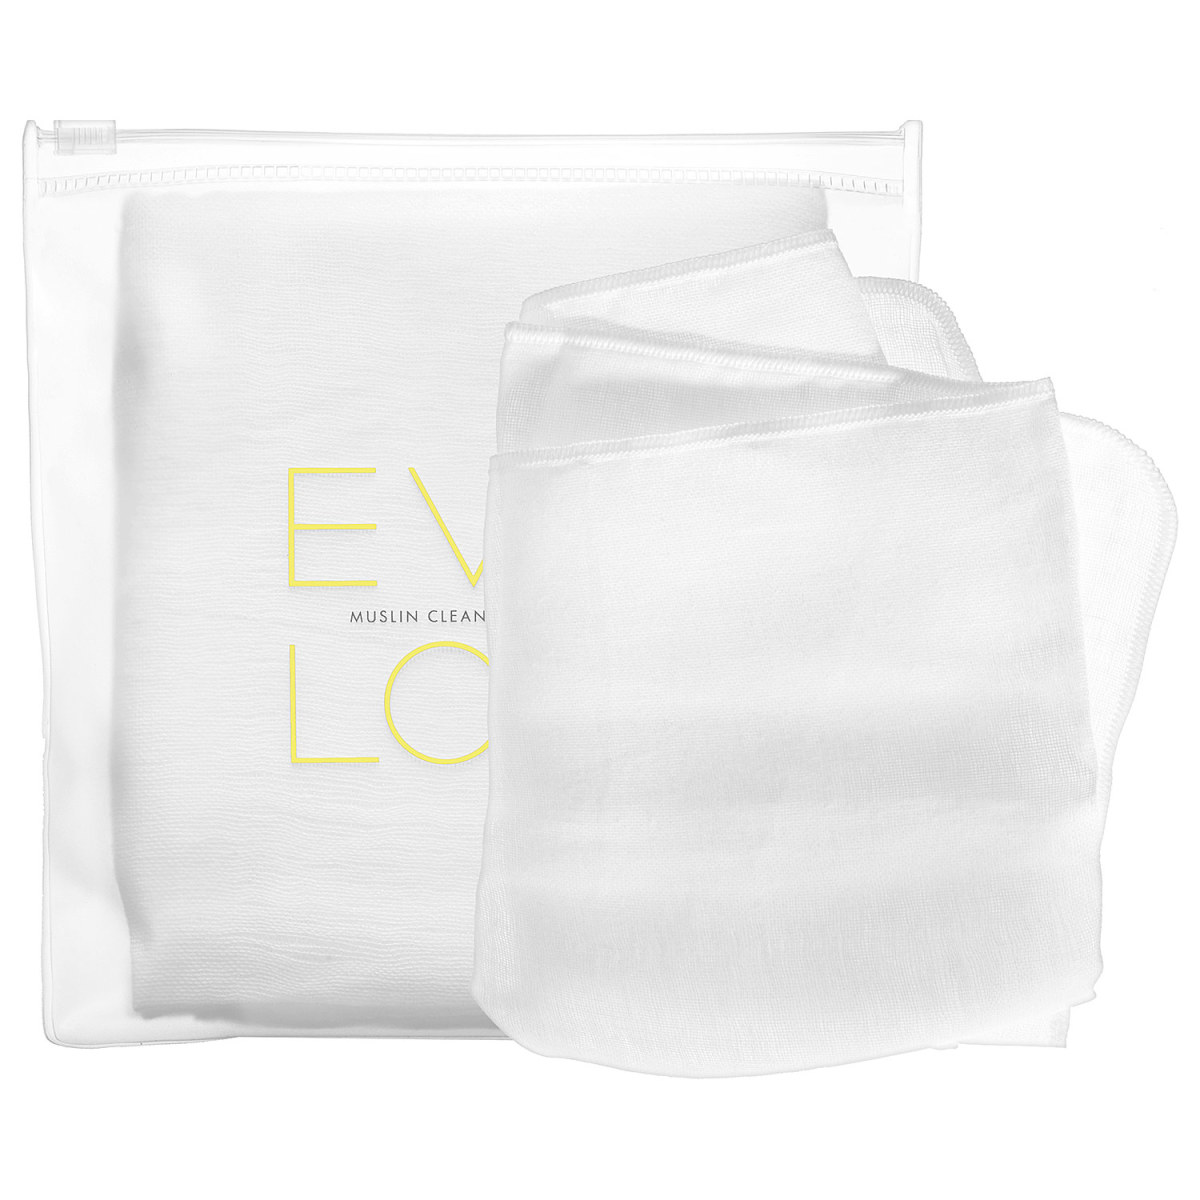 Eve Lom Muslin Cloths